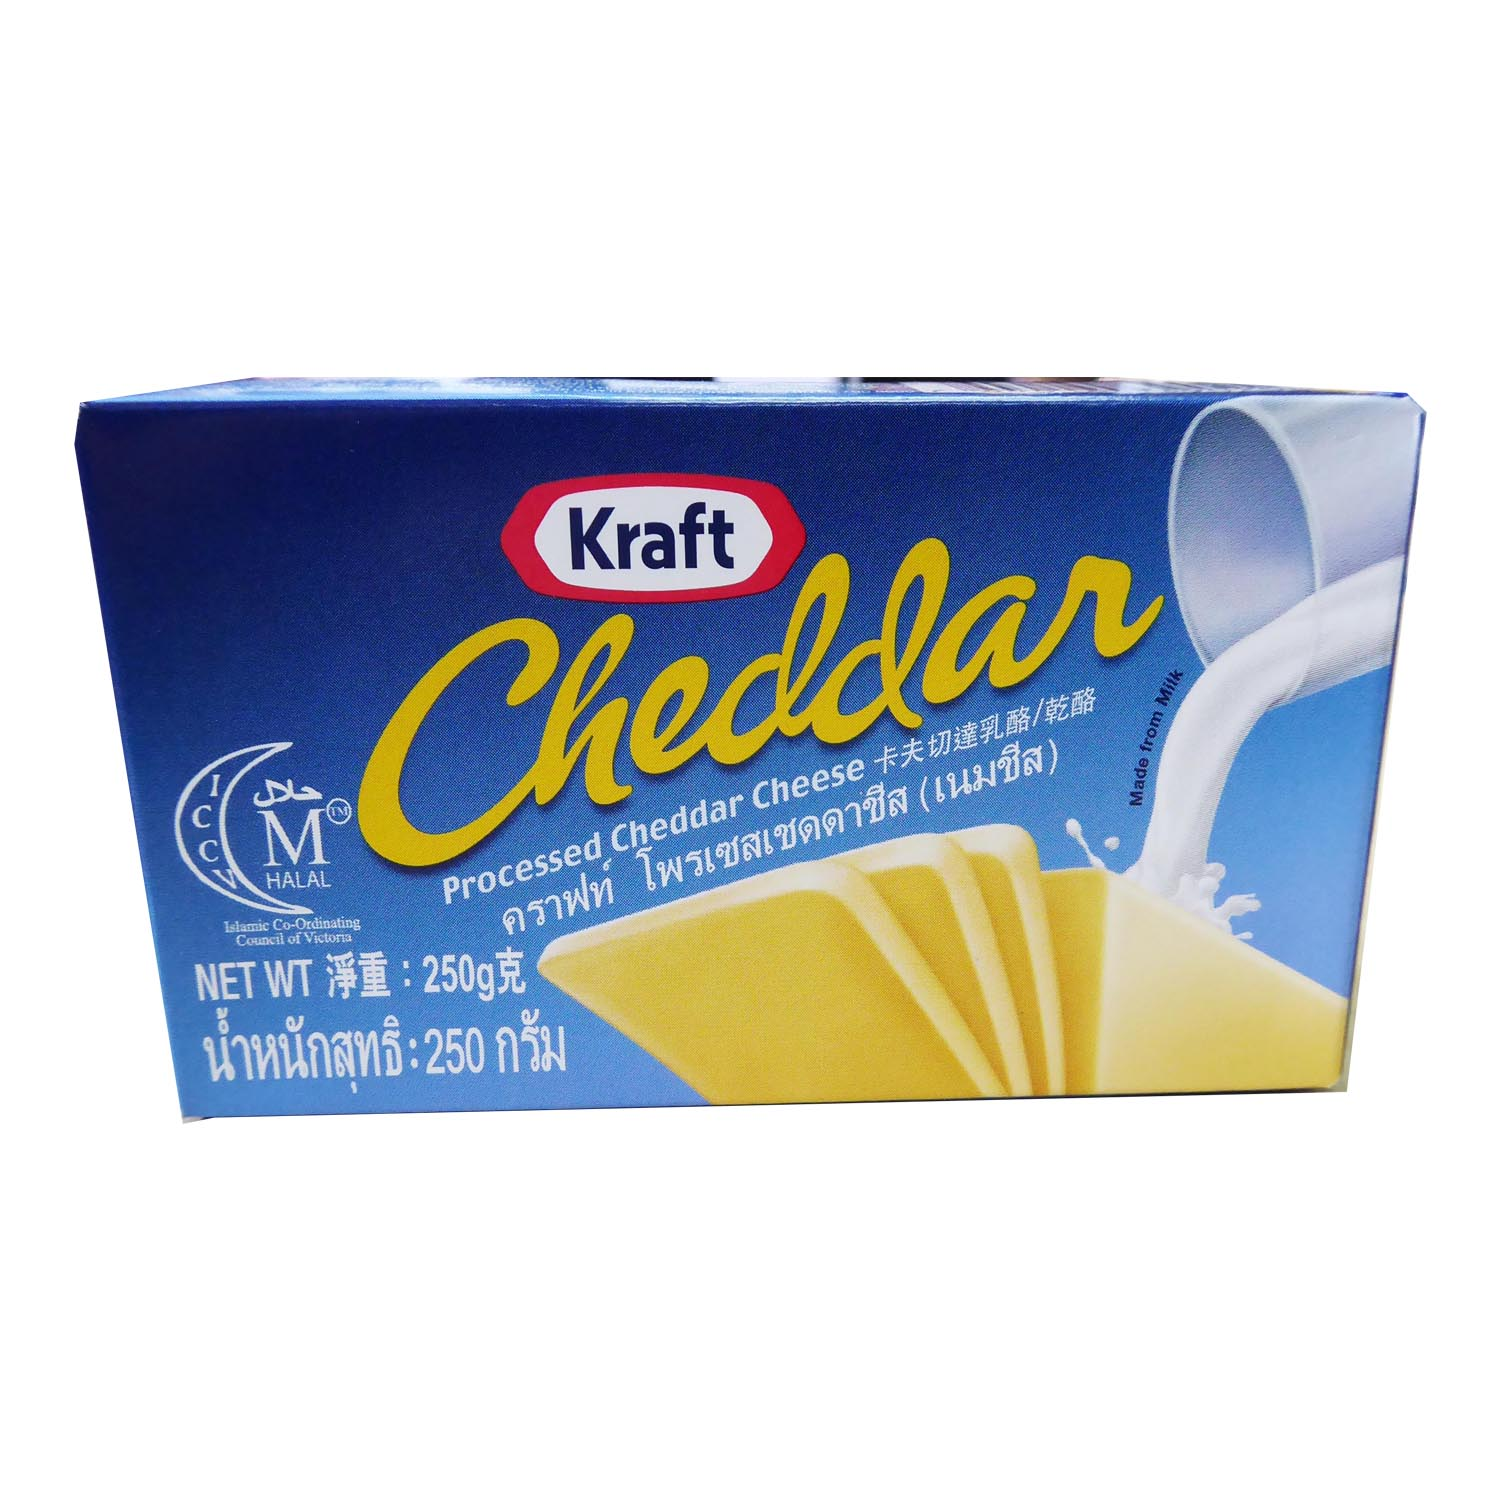 Kraft Cheddar Cheese - Block